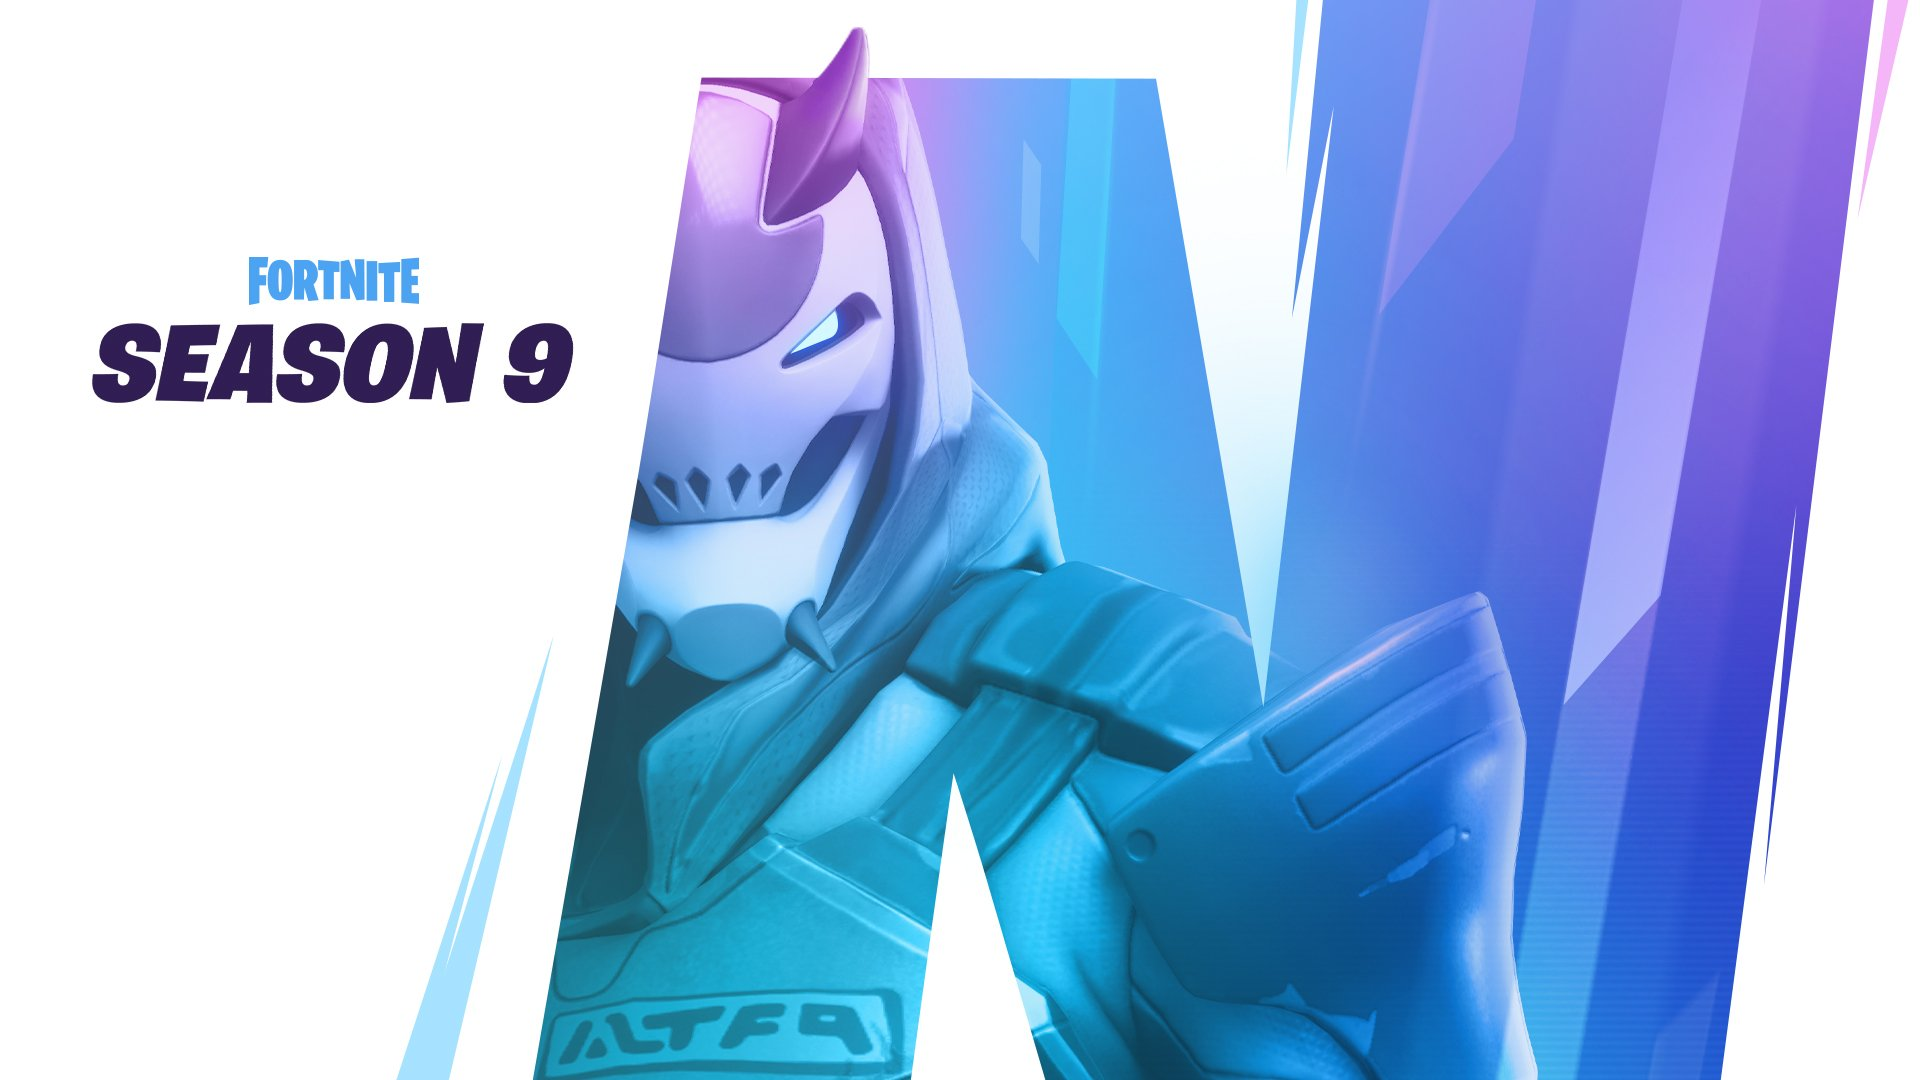 Fortnite Season 9 Patch Notes and Details Revealed